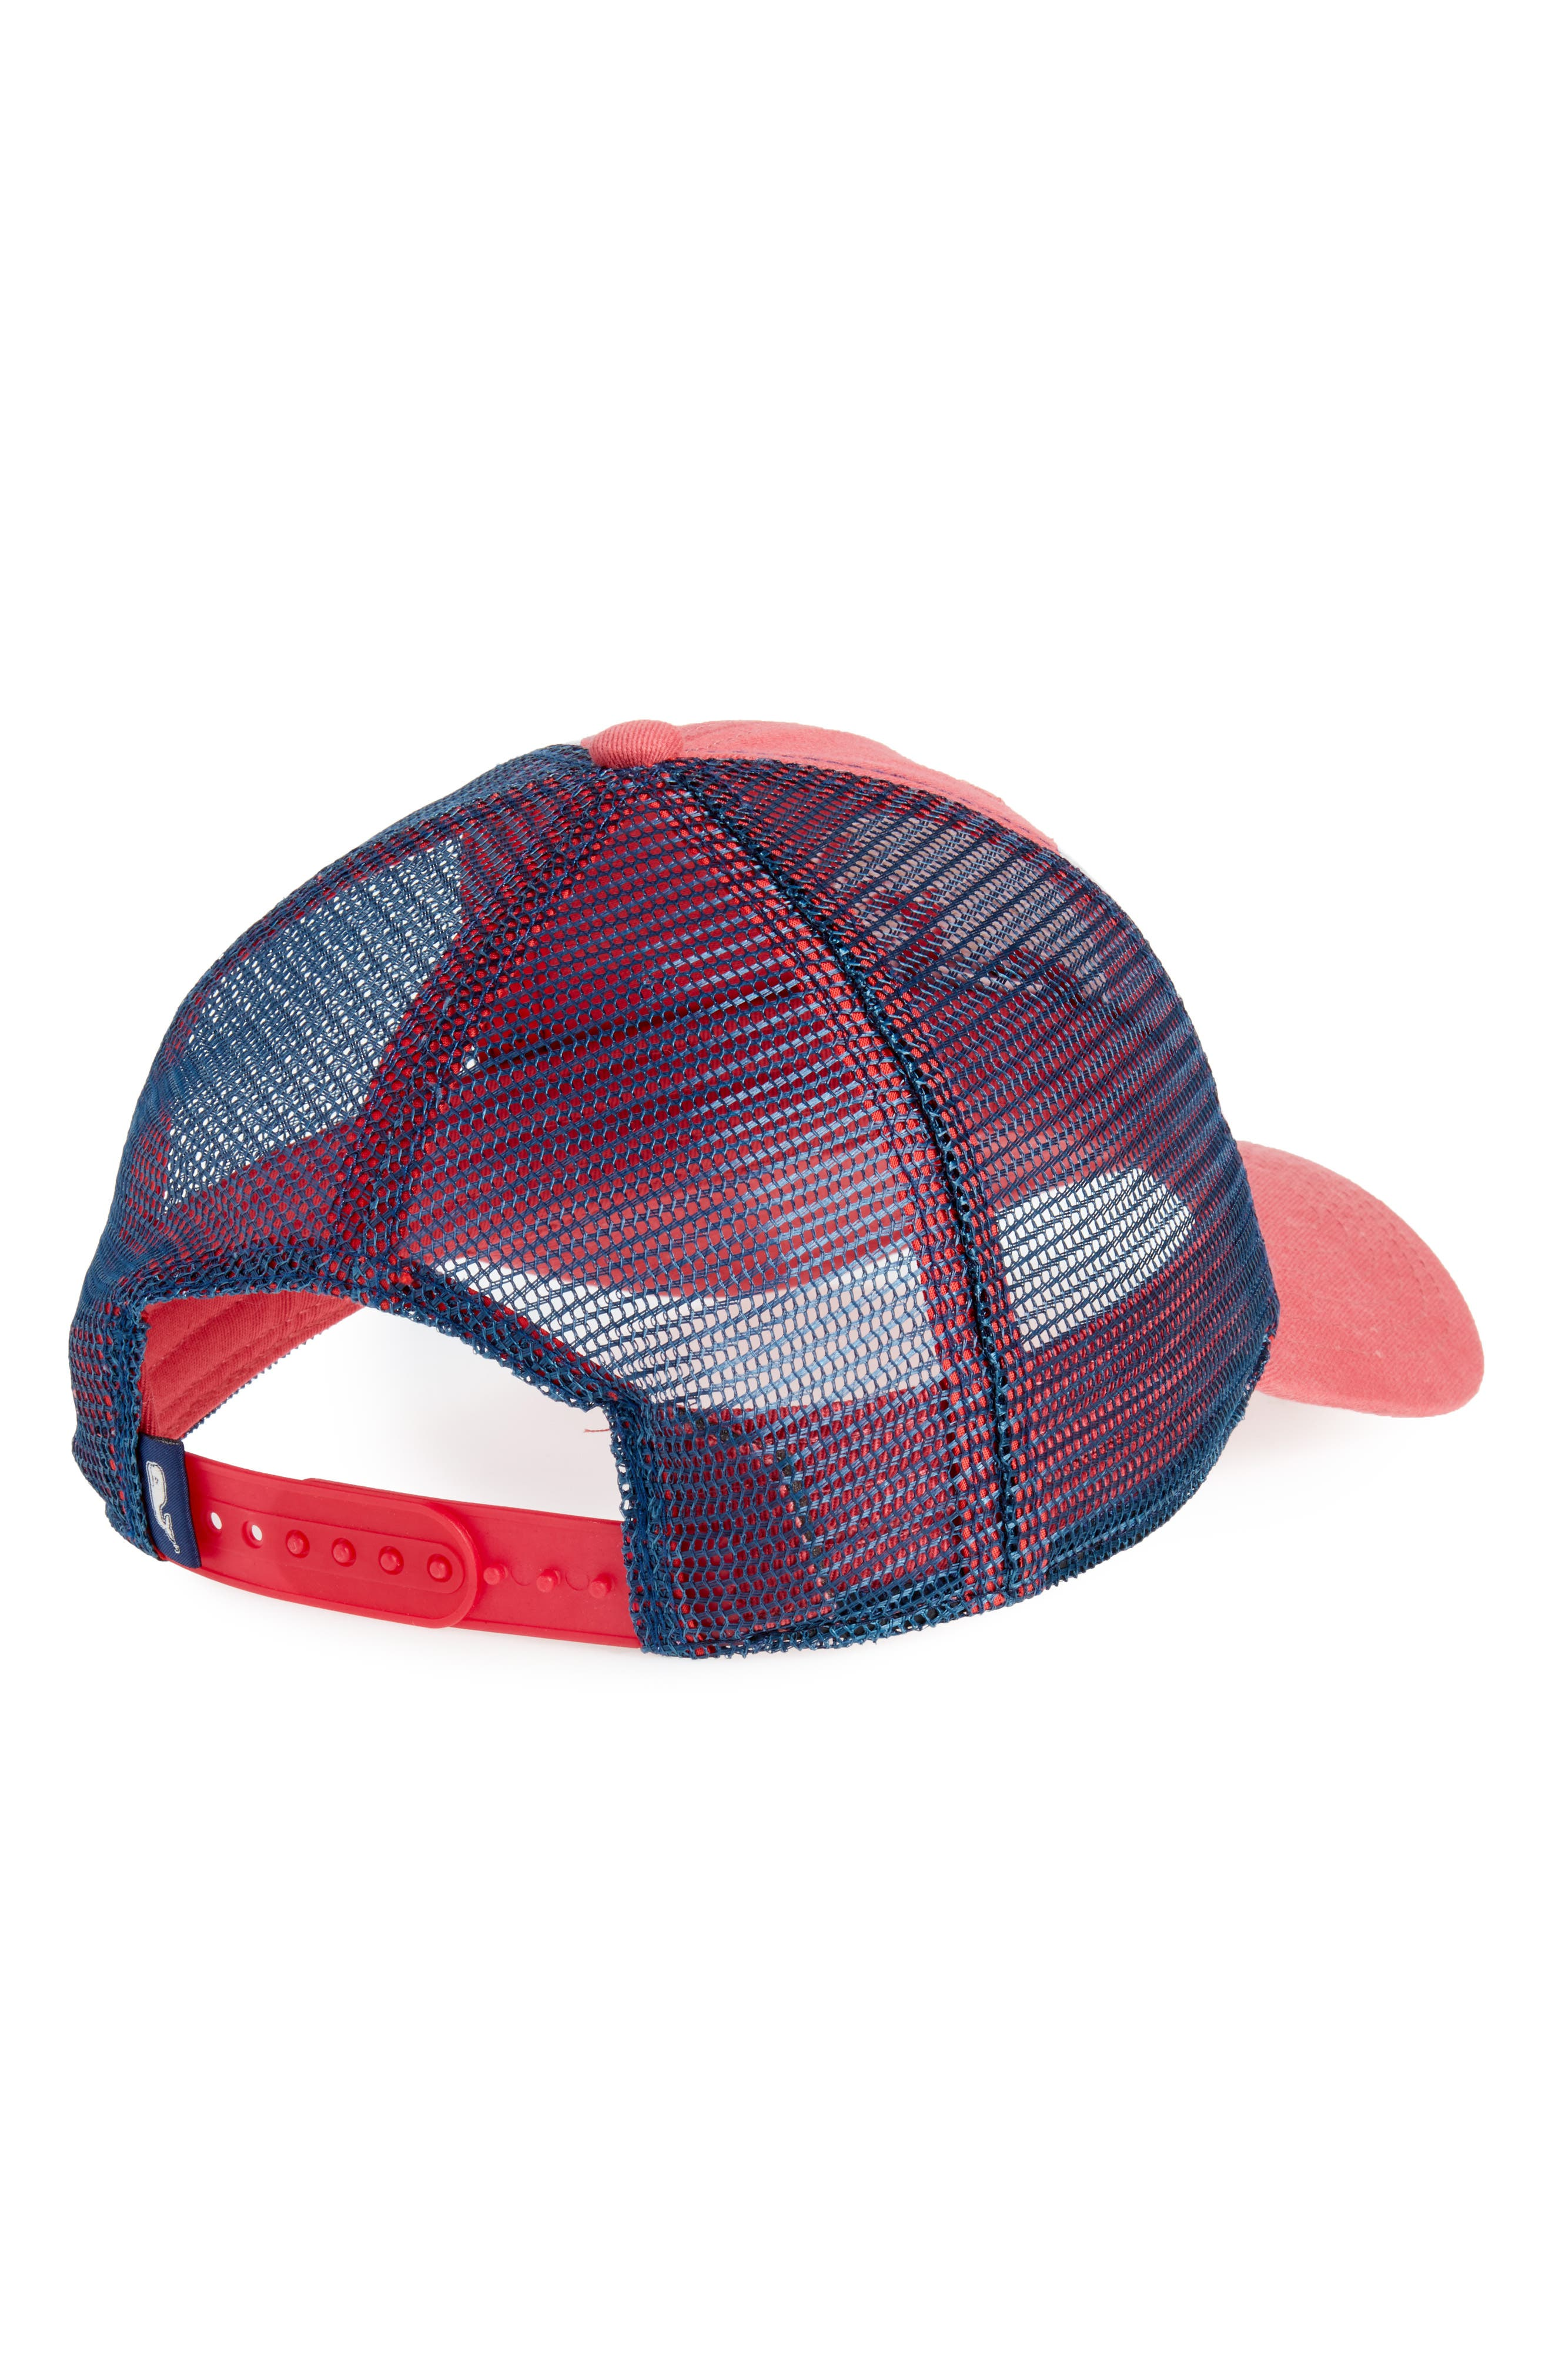 Low Pro Marlin Trucker Cap,                             Alternate thumbnail 2, color,                             Jetty Red